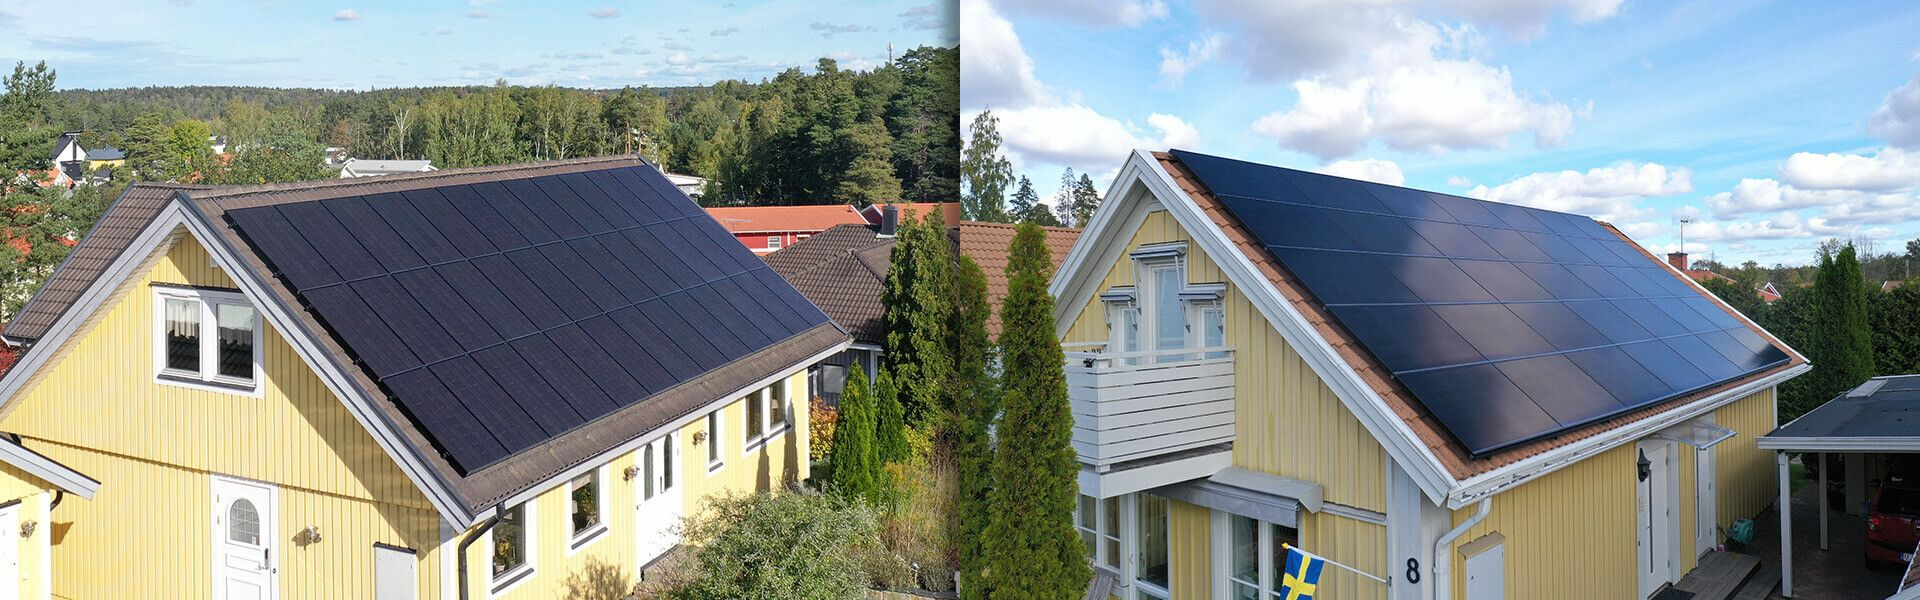 Conventional vs. Maxeon Solar Panels Social Sweden Comparison